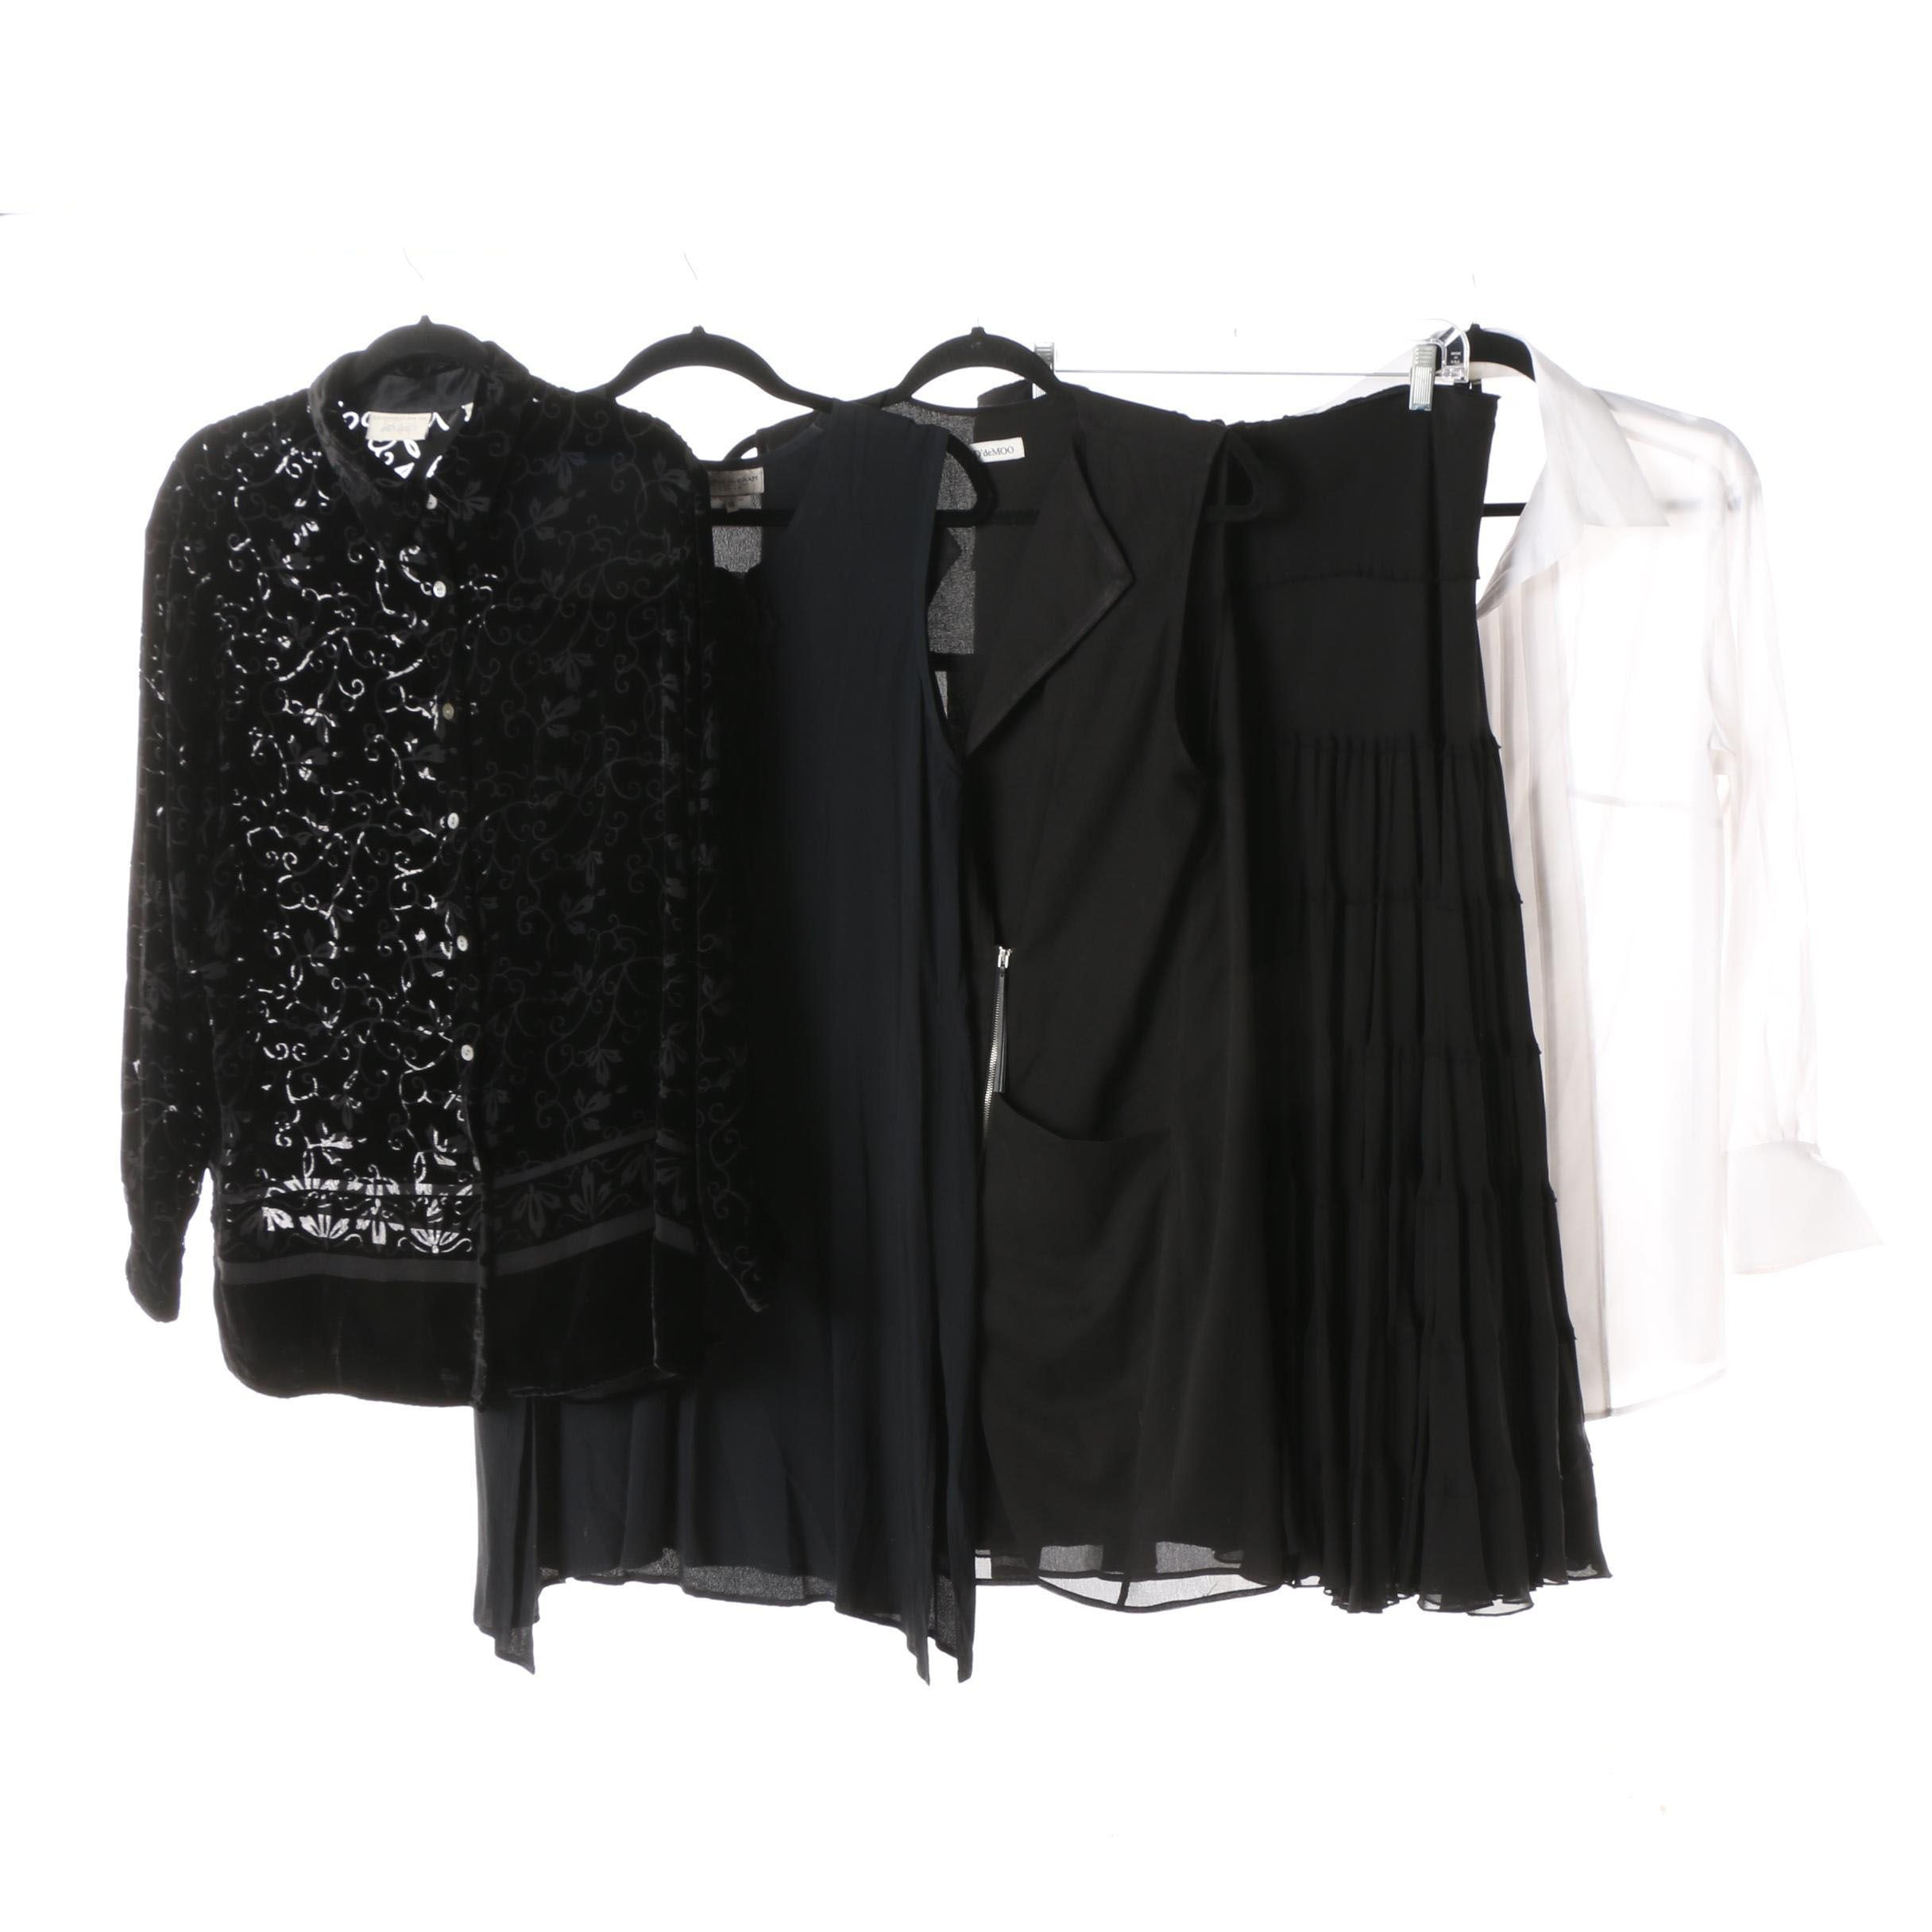 Women's Dresses, Skirt and Shirts Including D'deMOO and Lord & Taylor